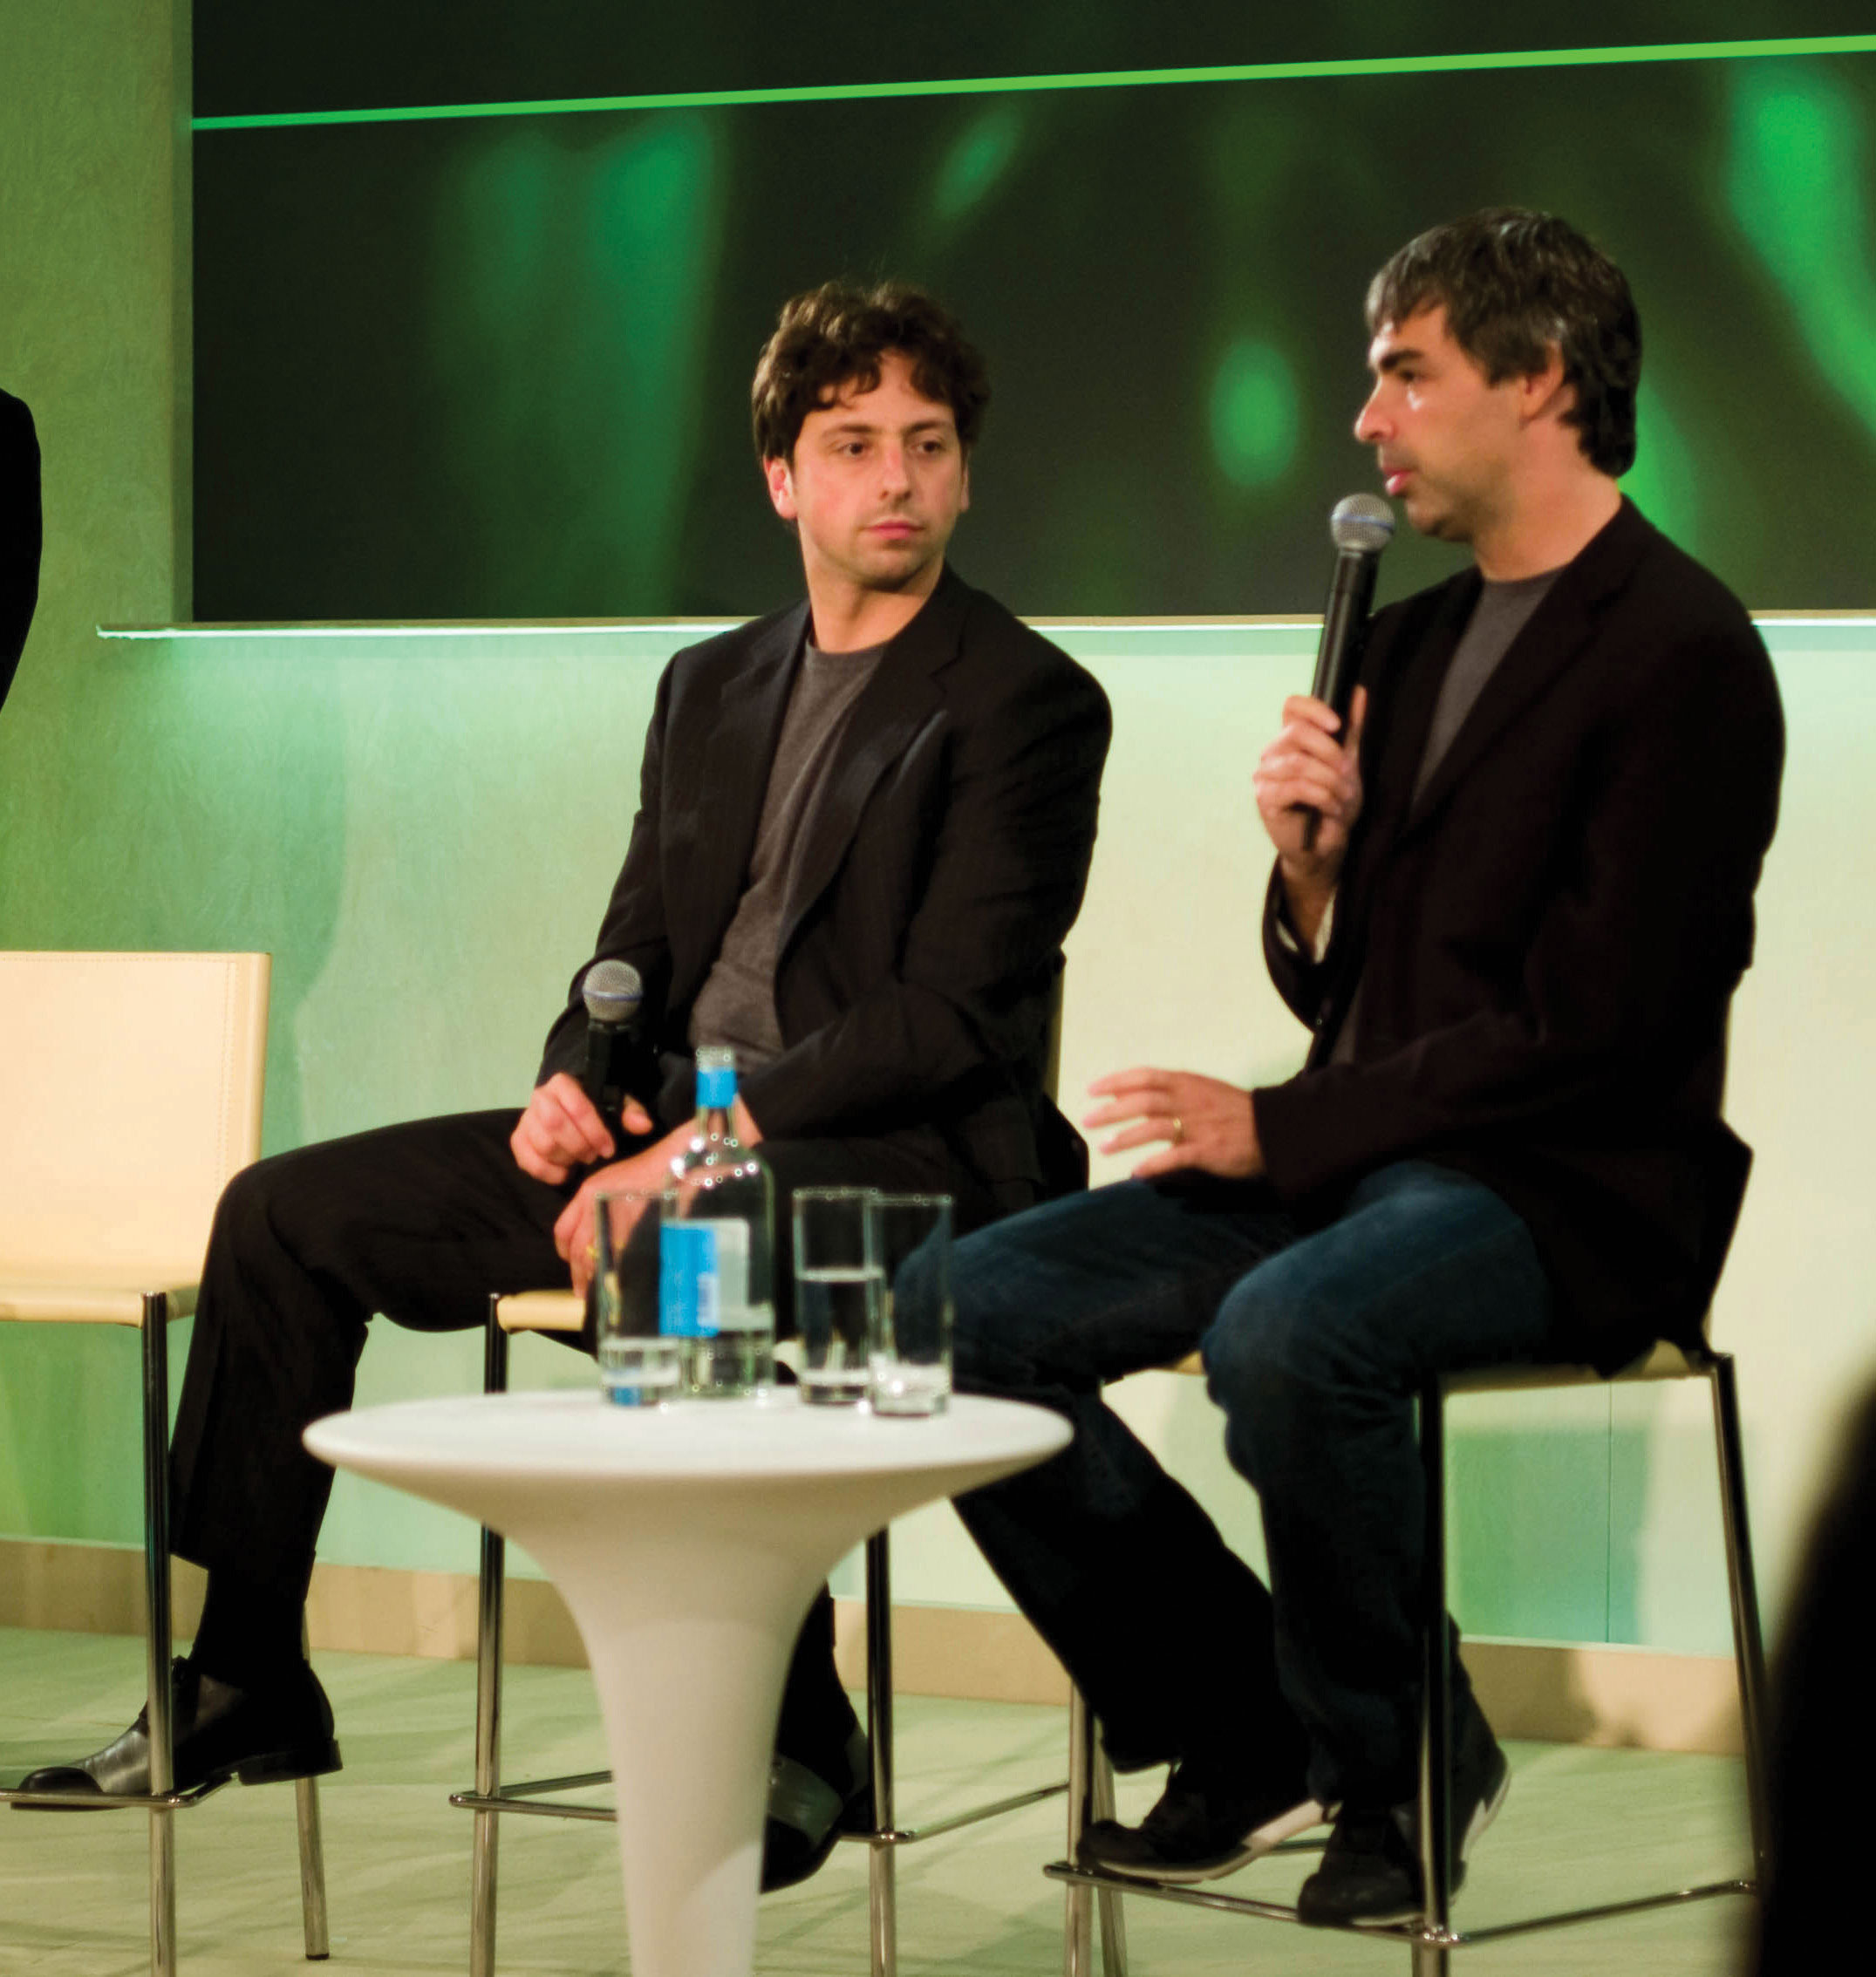 The Google corporation cofounders Larry Page and Sergey Brin are good examples of transformational leaders who have been able to see new visions and to motivate their workers to achieve them.